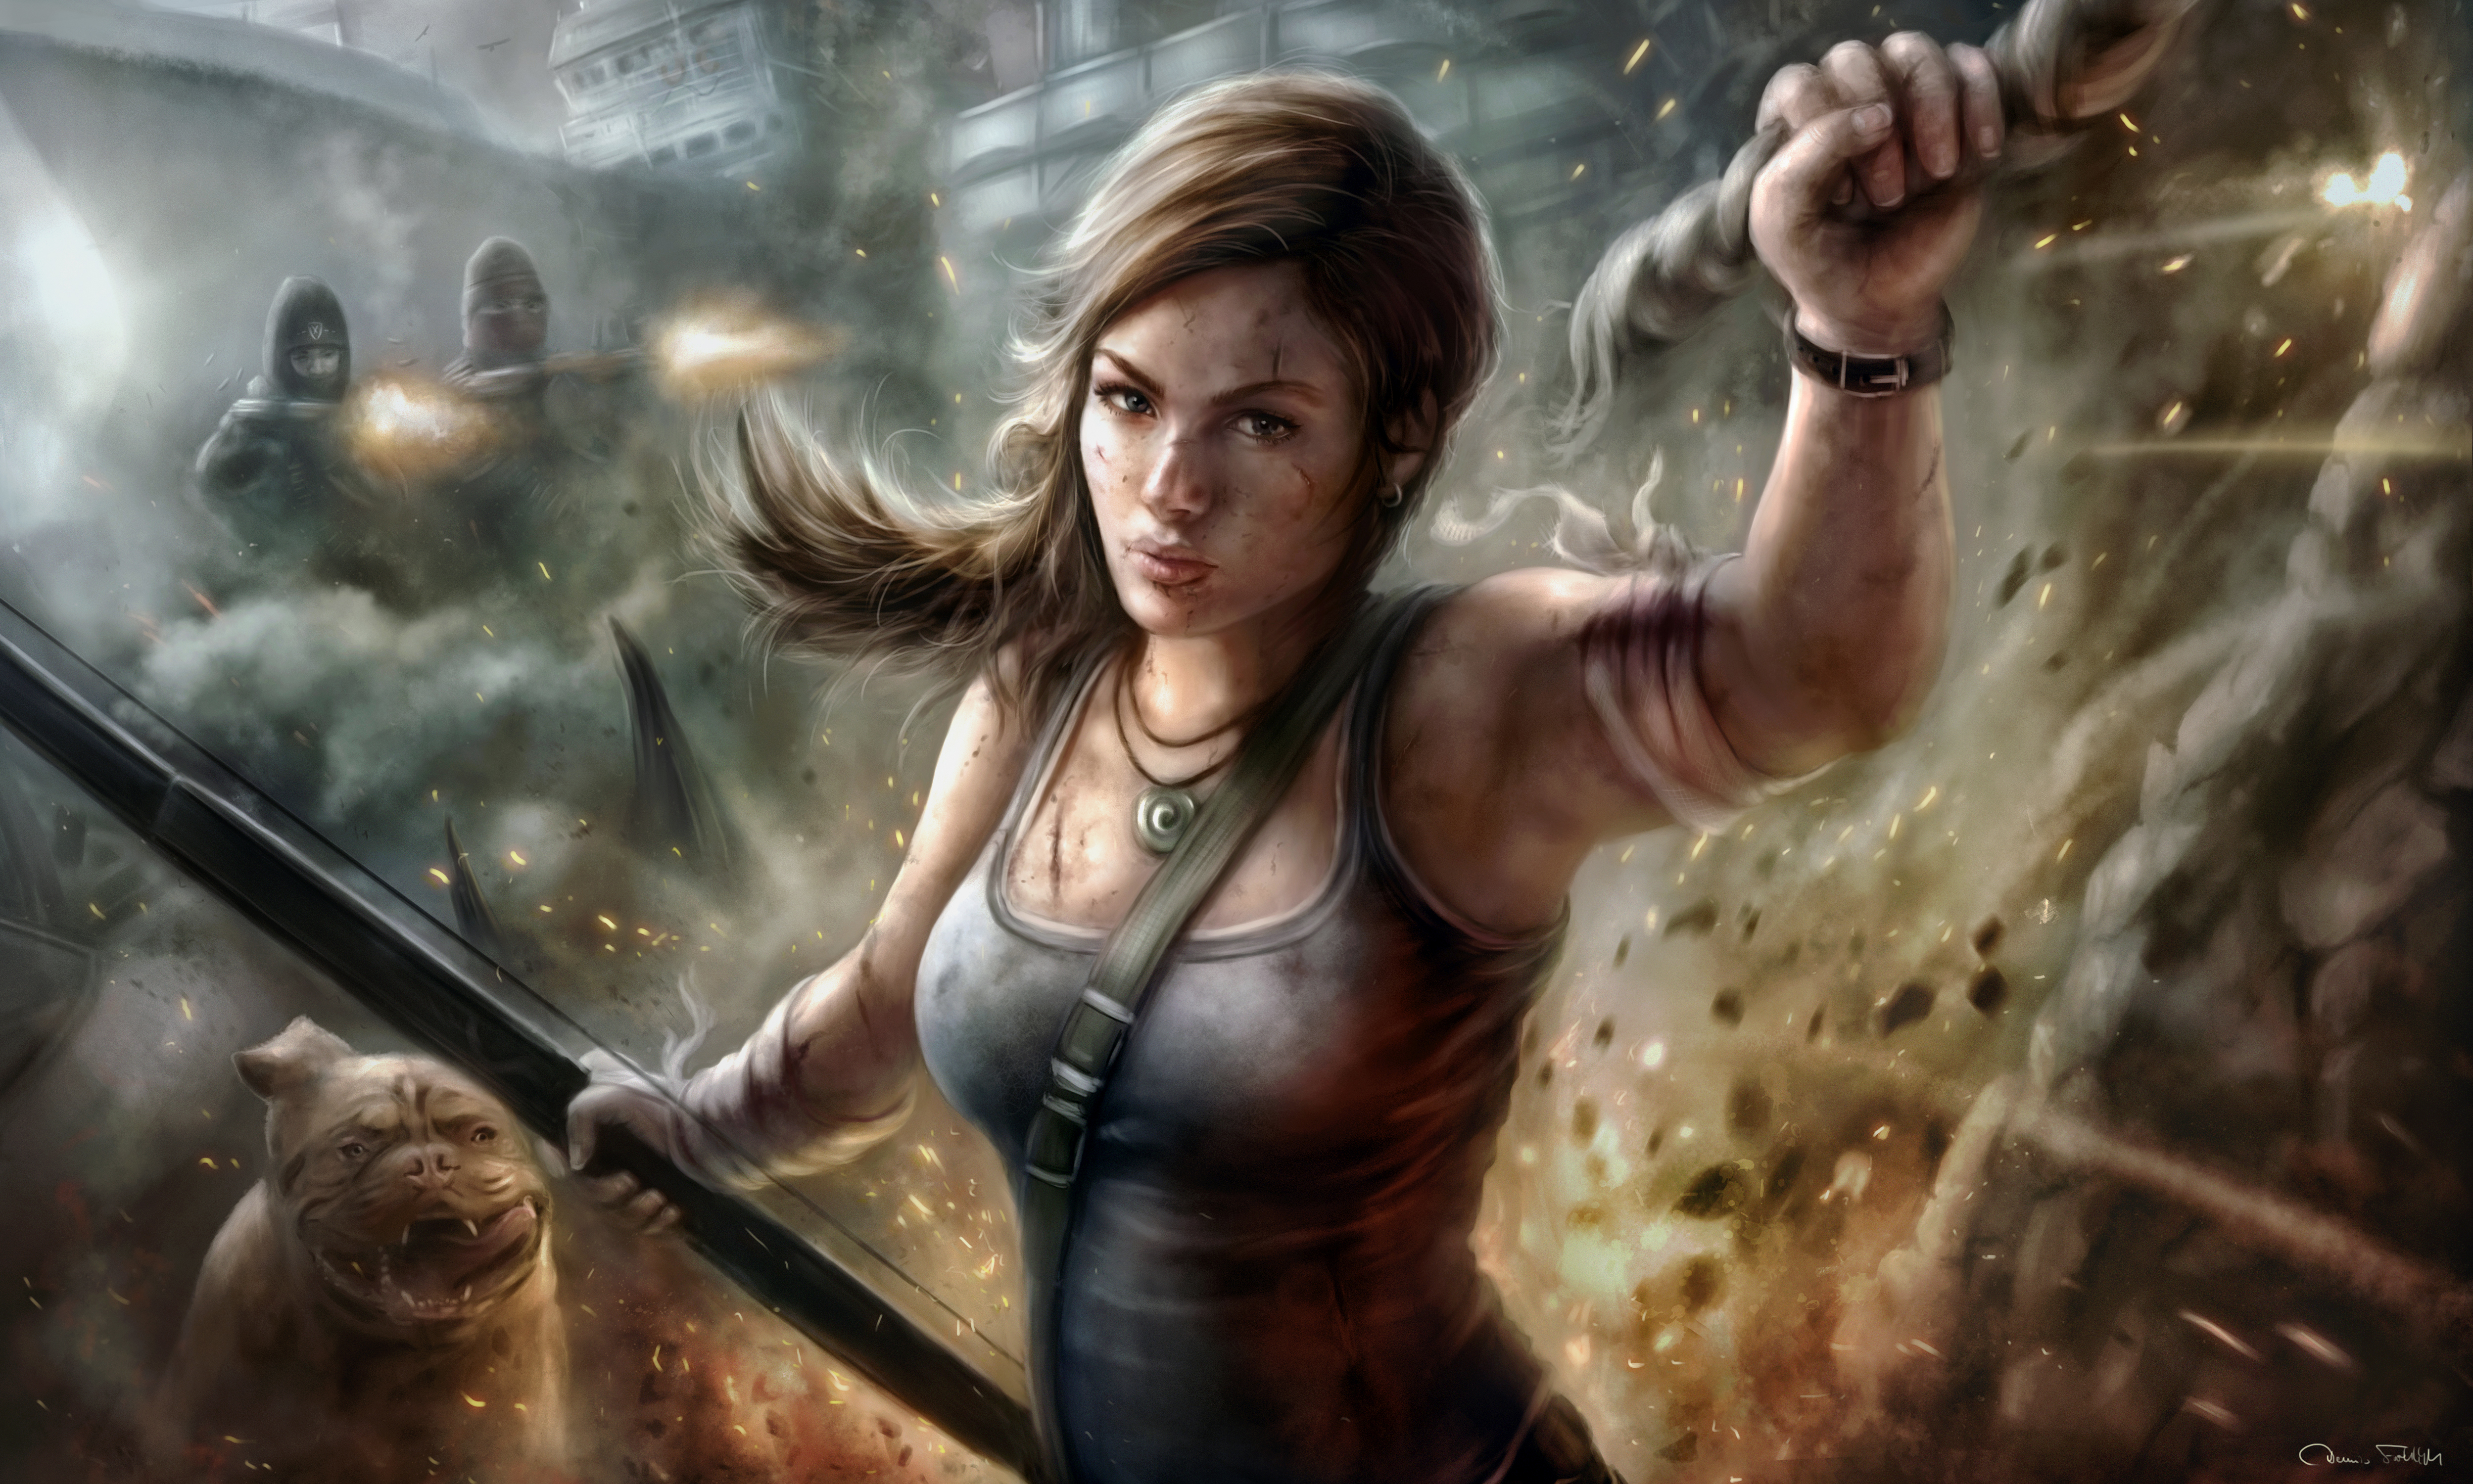 Lara Croft Tomb Raider Fanart 5k Hd Games 4k Wallpapers Images Backgrounds Photos And Pictures